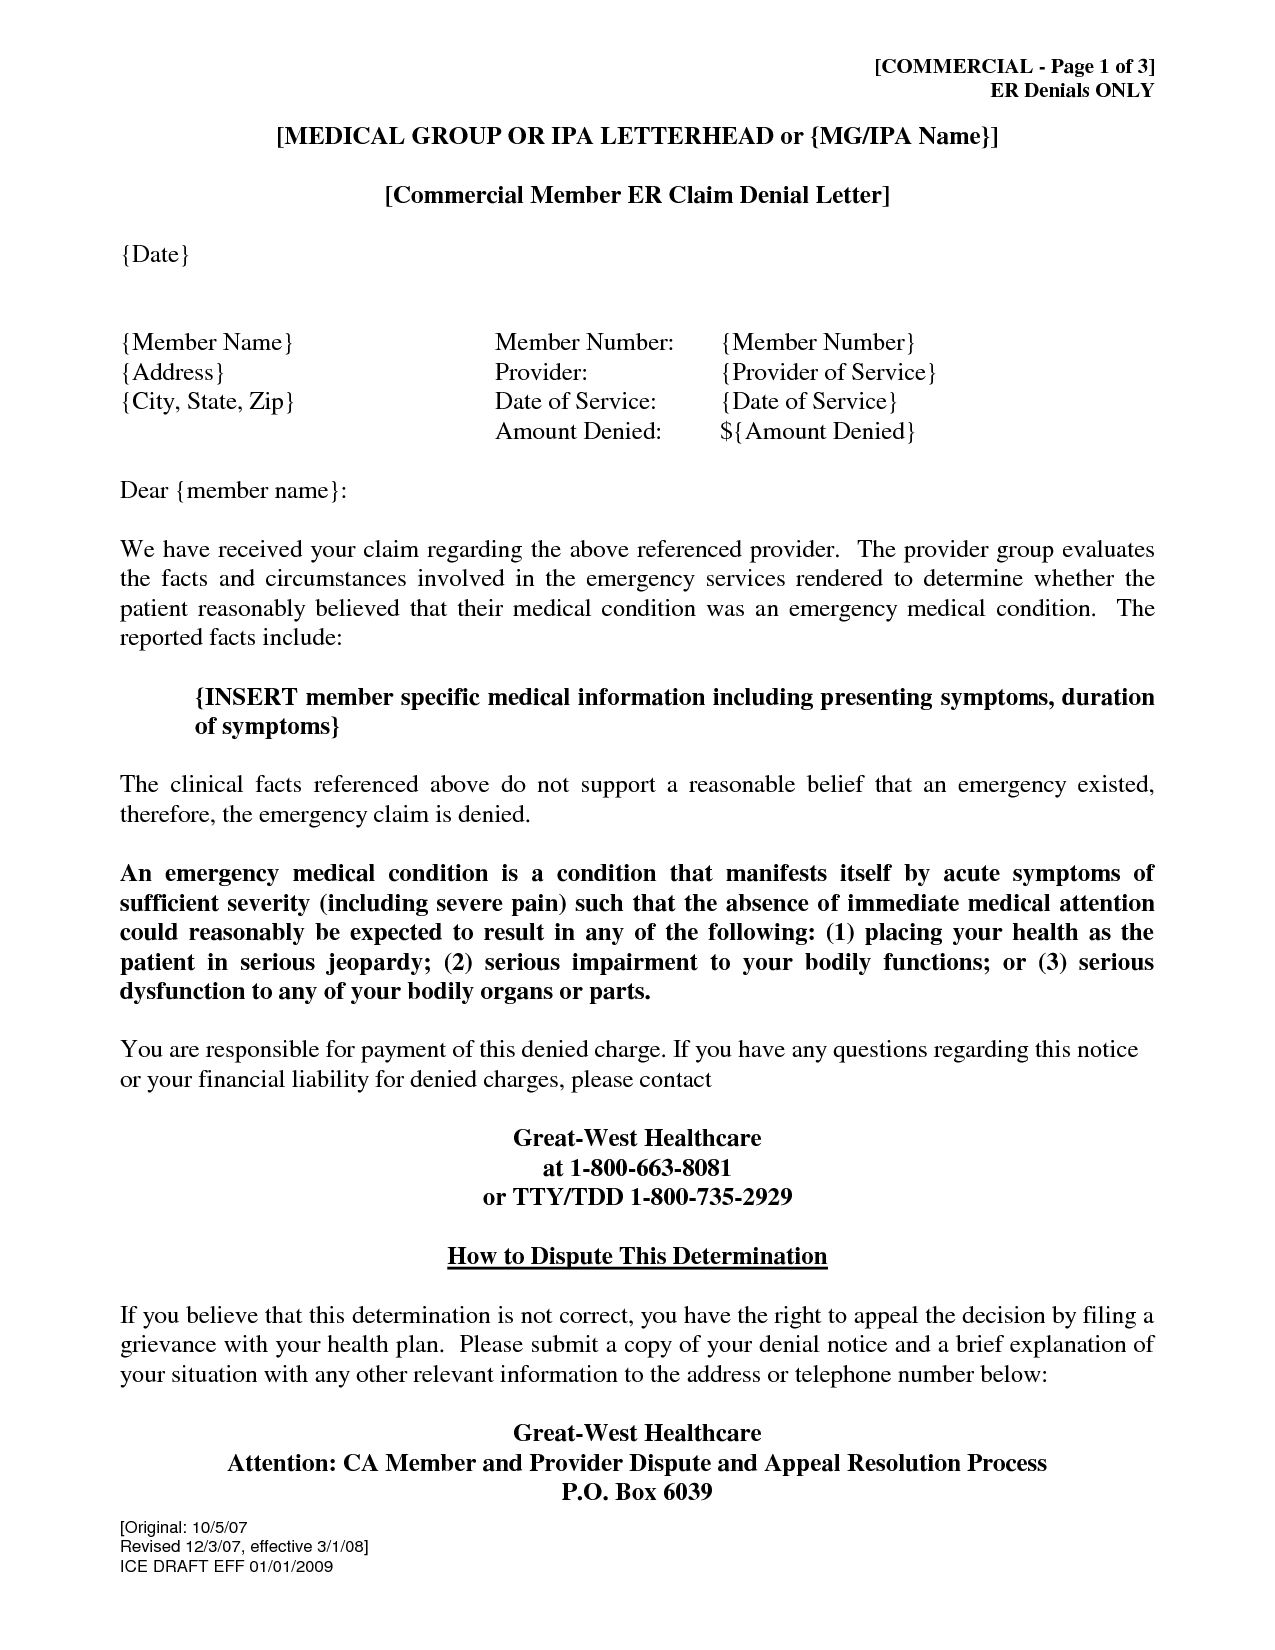 Denial Of Claim Letter - Free Printable Documents